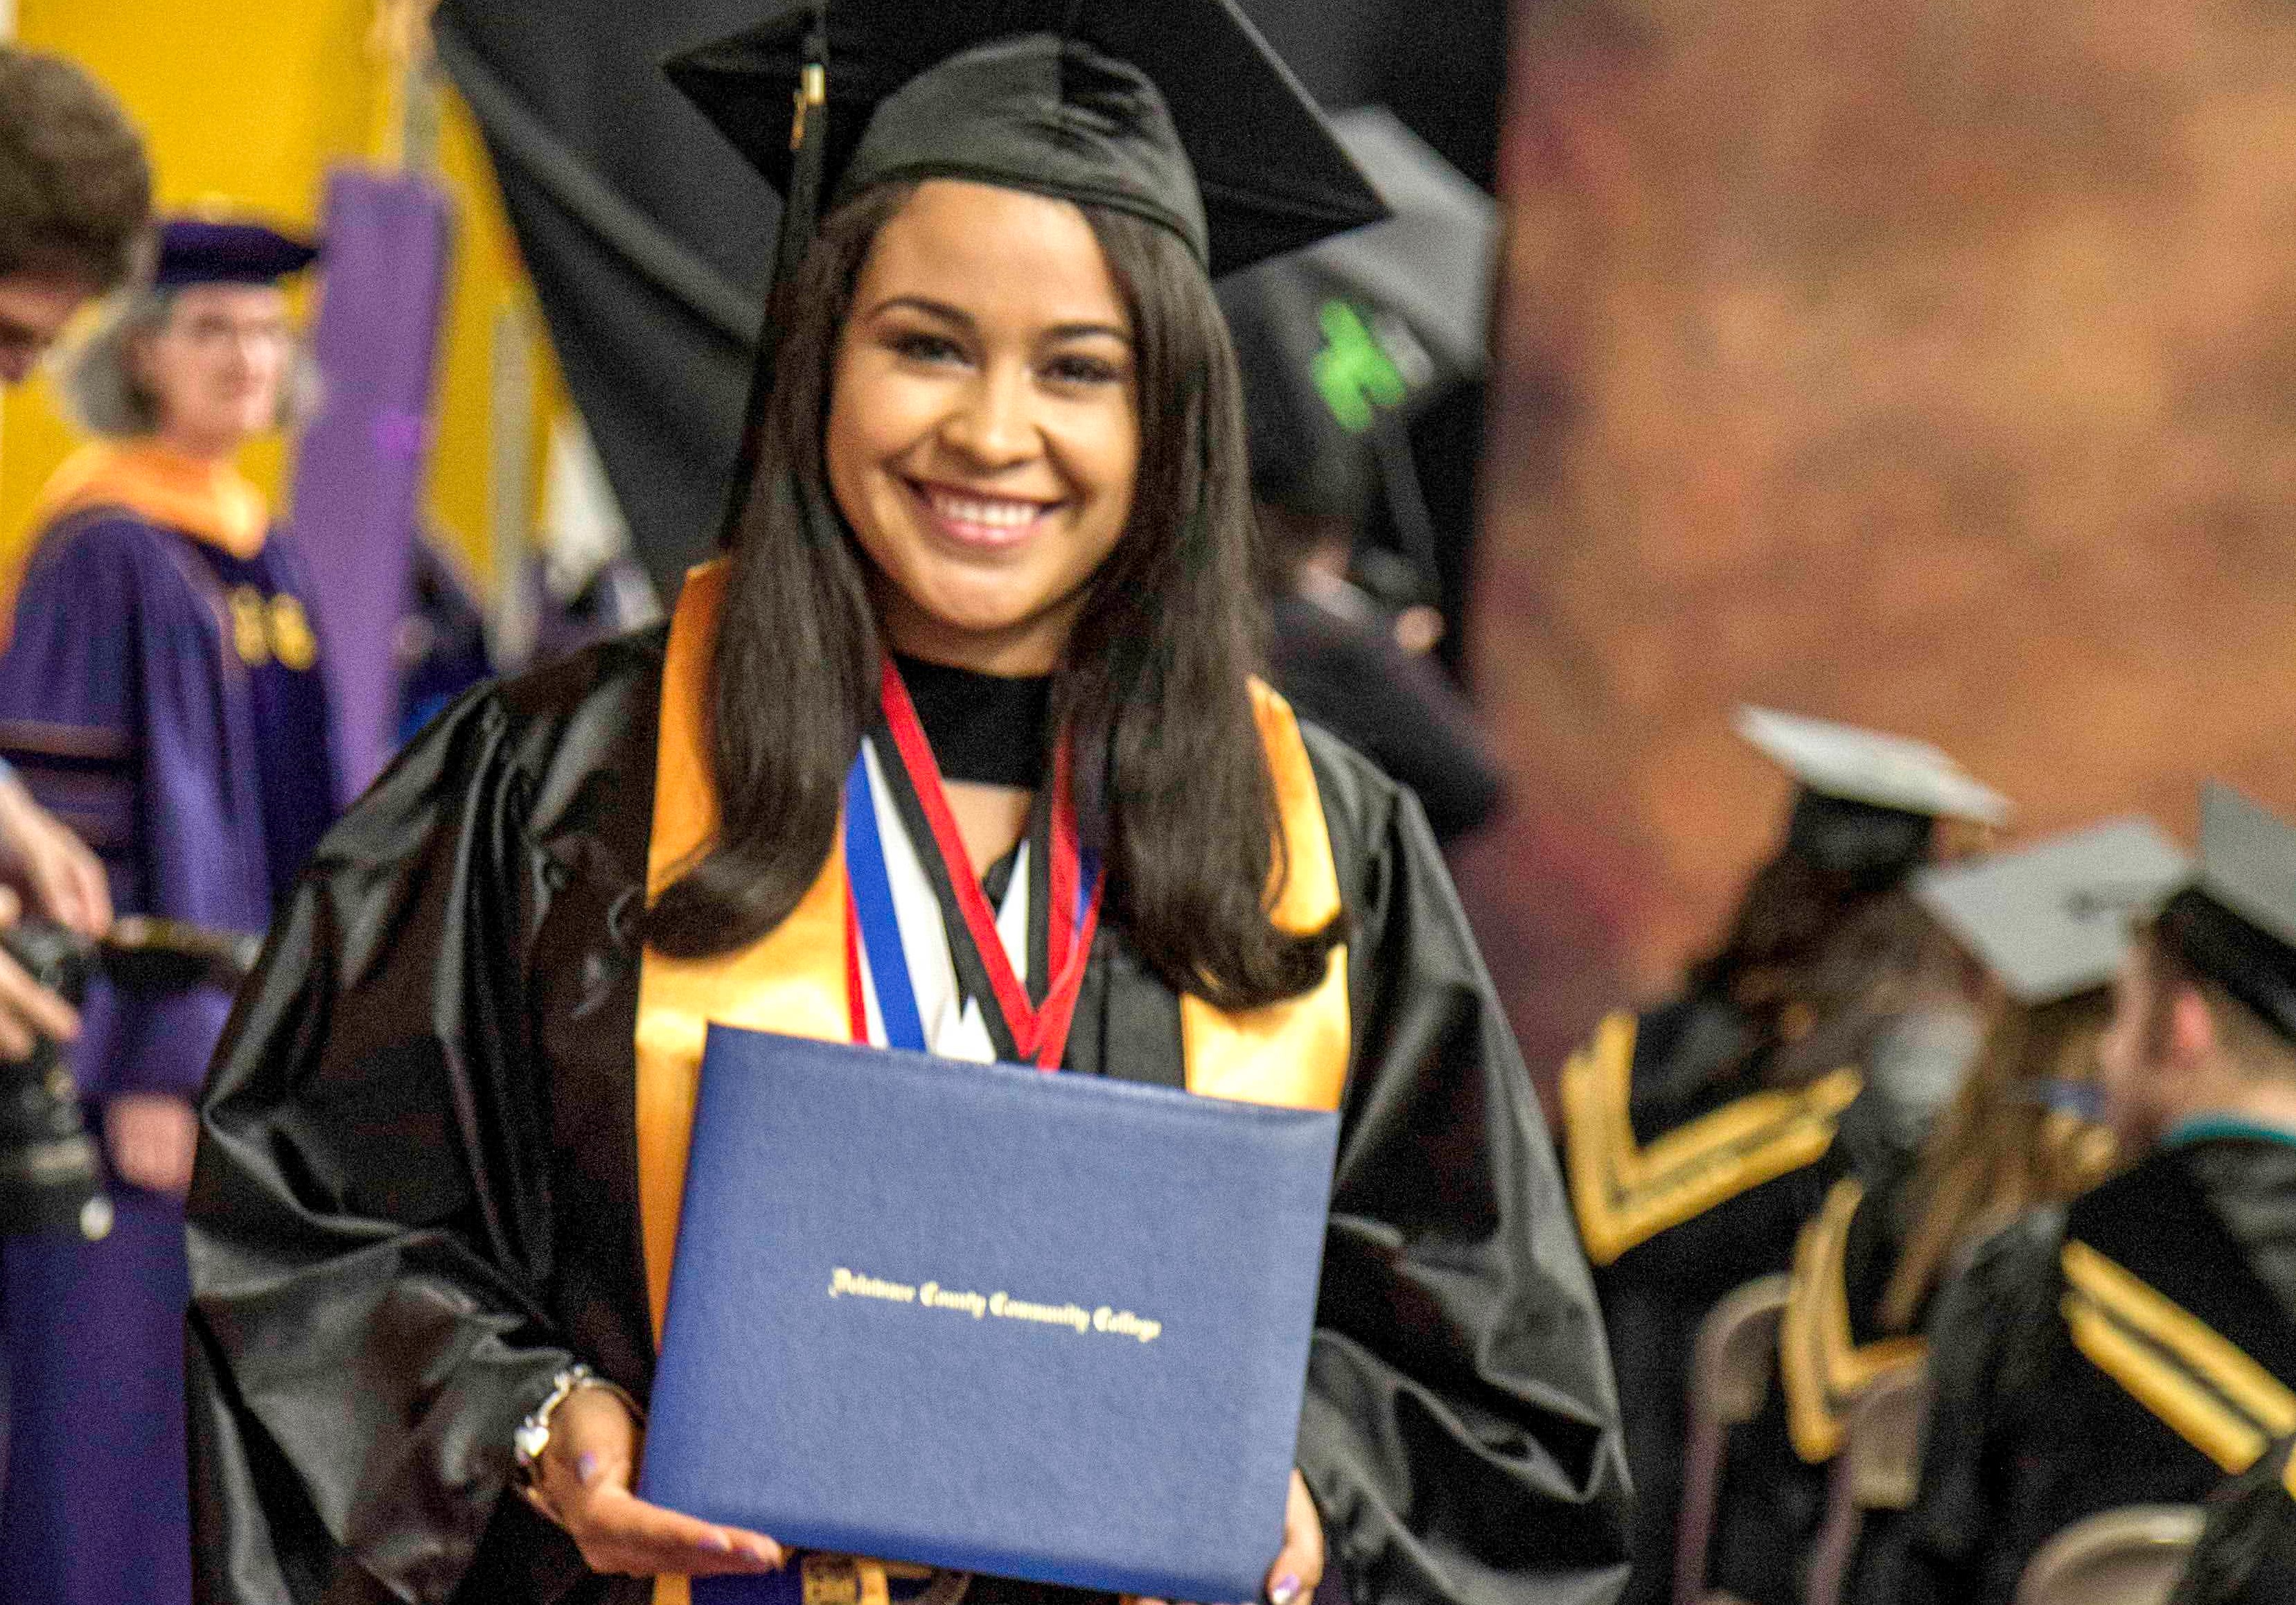 Student Flourishes at Delaware County Community College to Become Family's First Grad